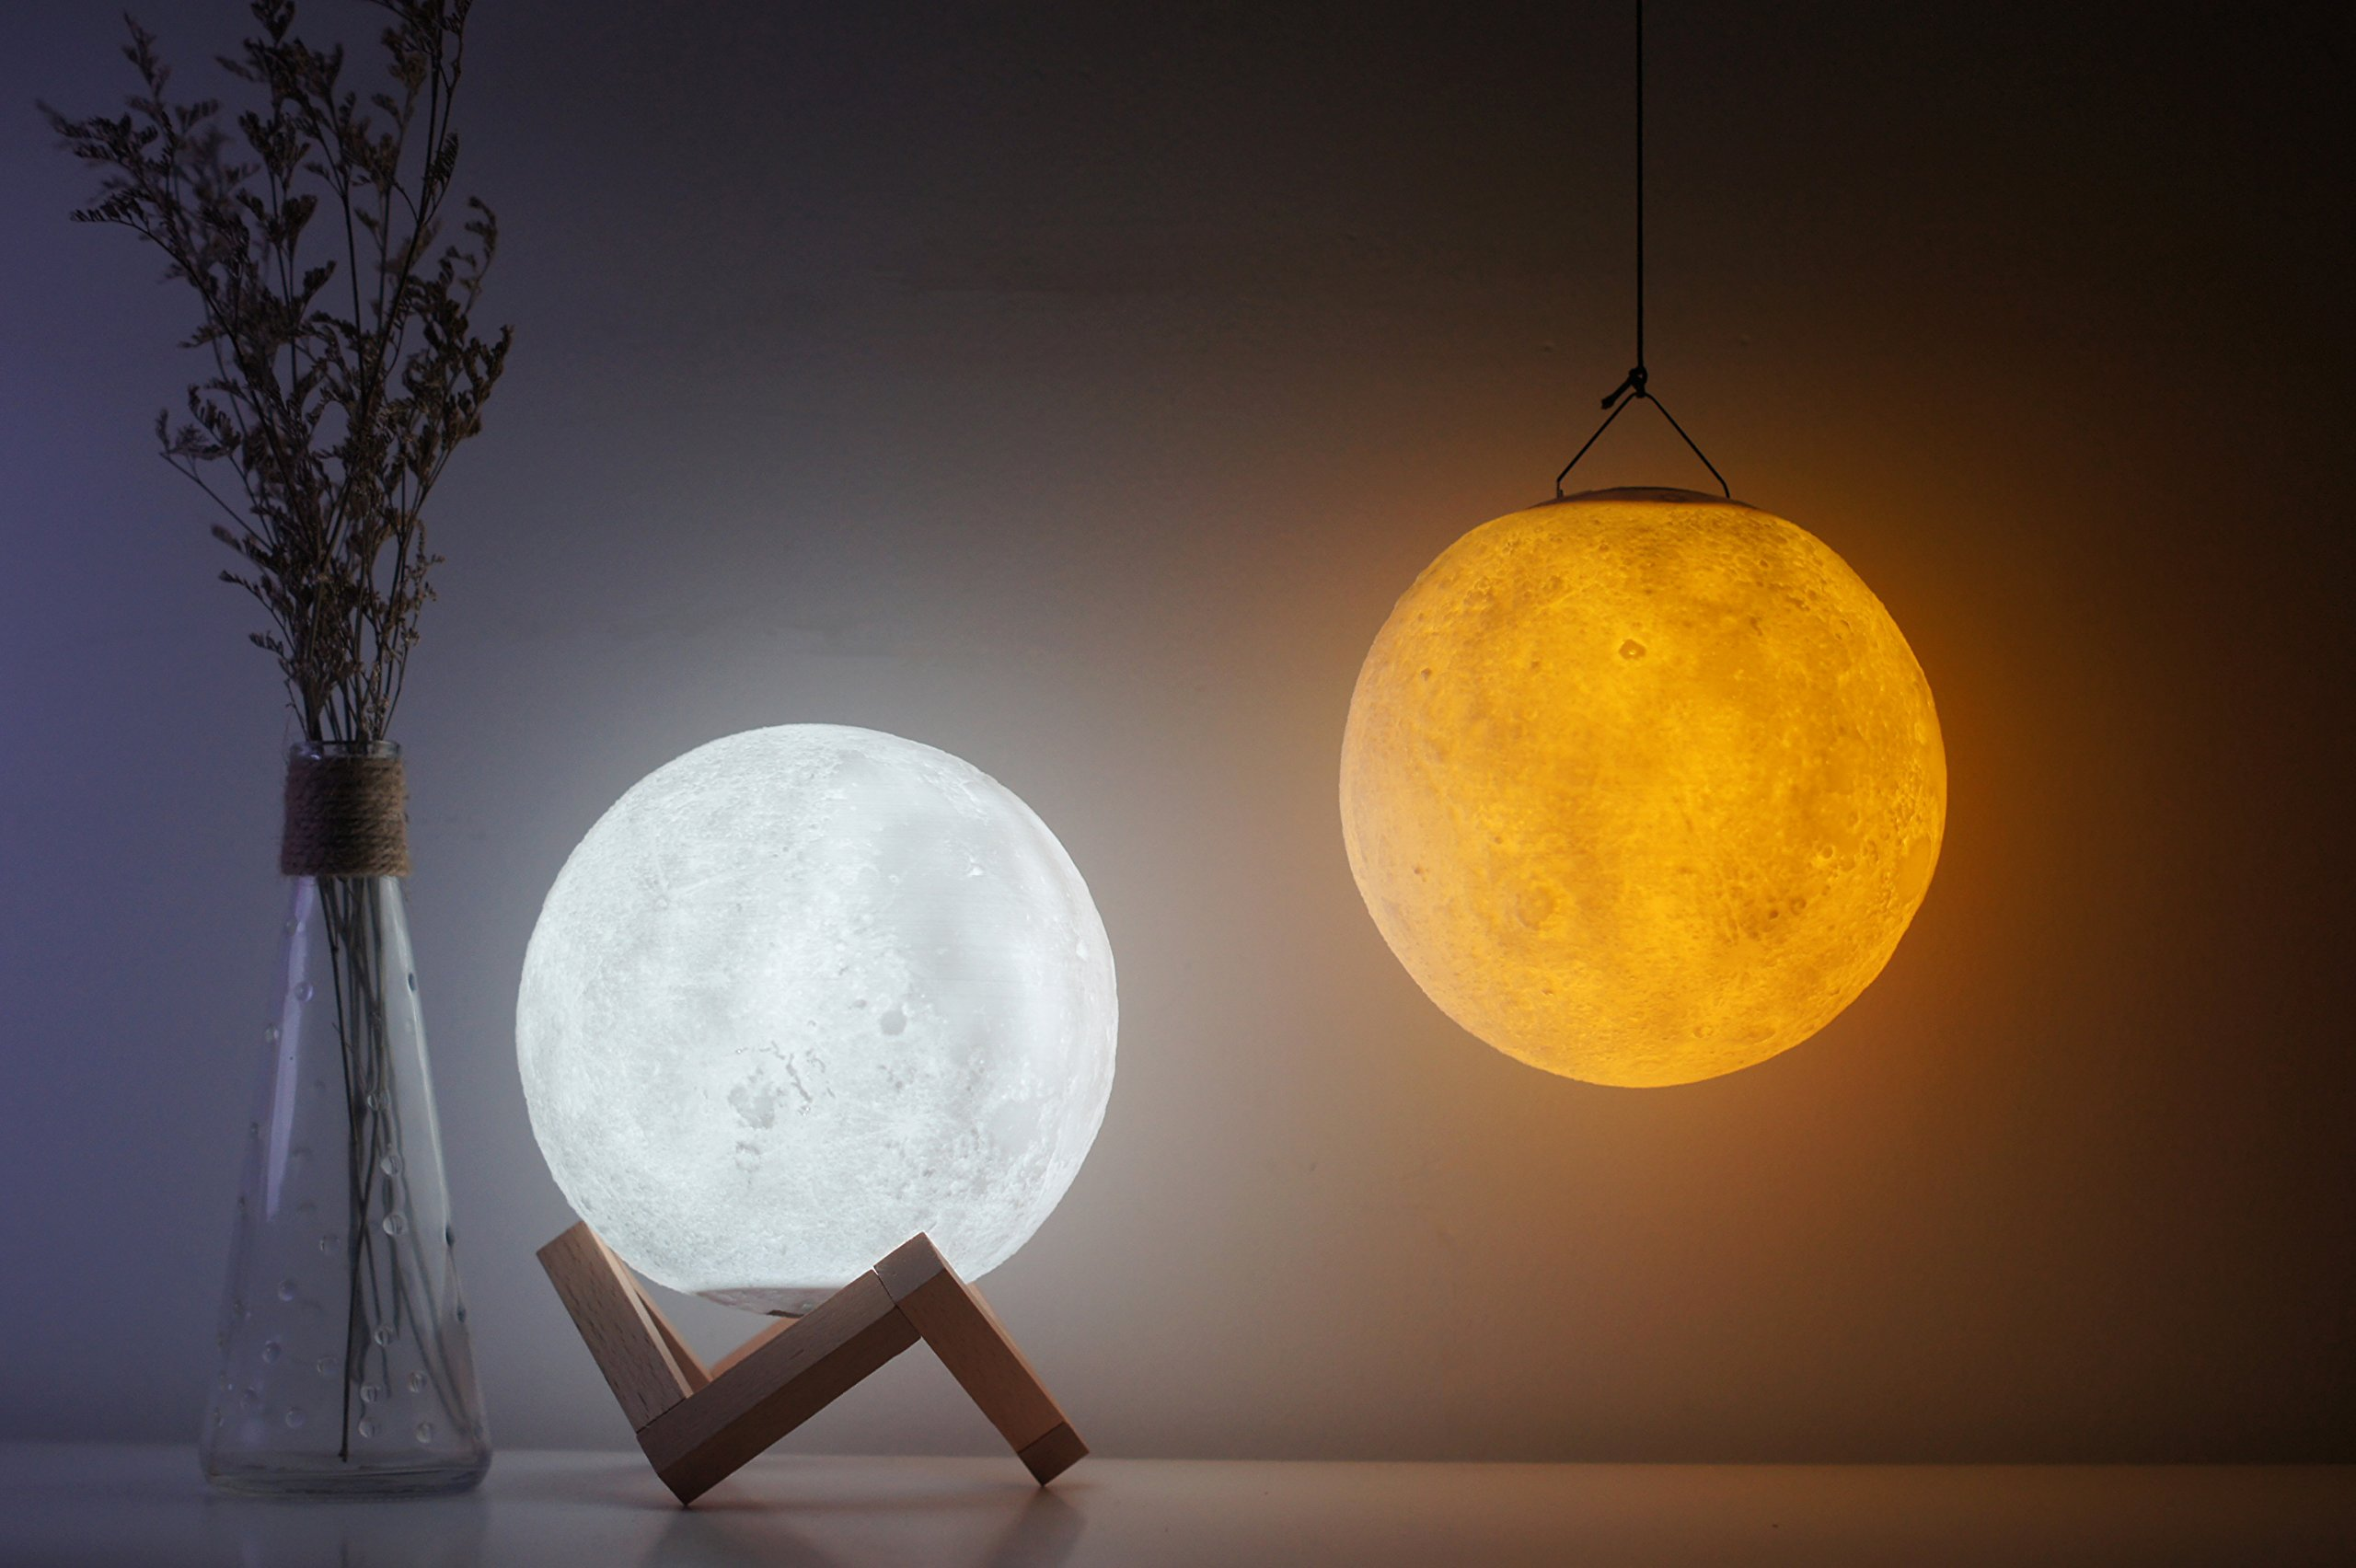 3D Moon Lamp,USB LED Night Light Magical Lunar Table Lamp Moonlight,Yellow Warm and White 3 Colors Change Tapping Control,Home Decorative Lights Baby Nursery Lamp for Kid Bedroom (15cm/ 5.9 inch)